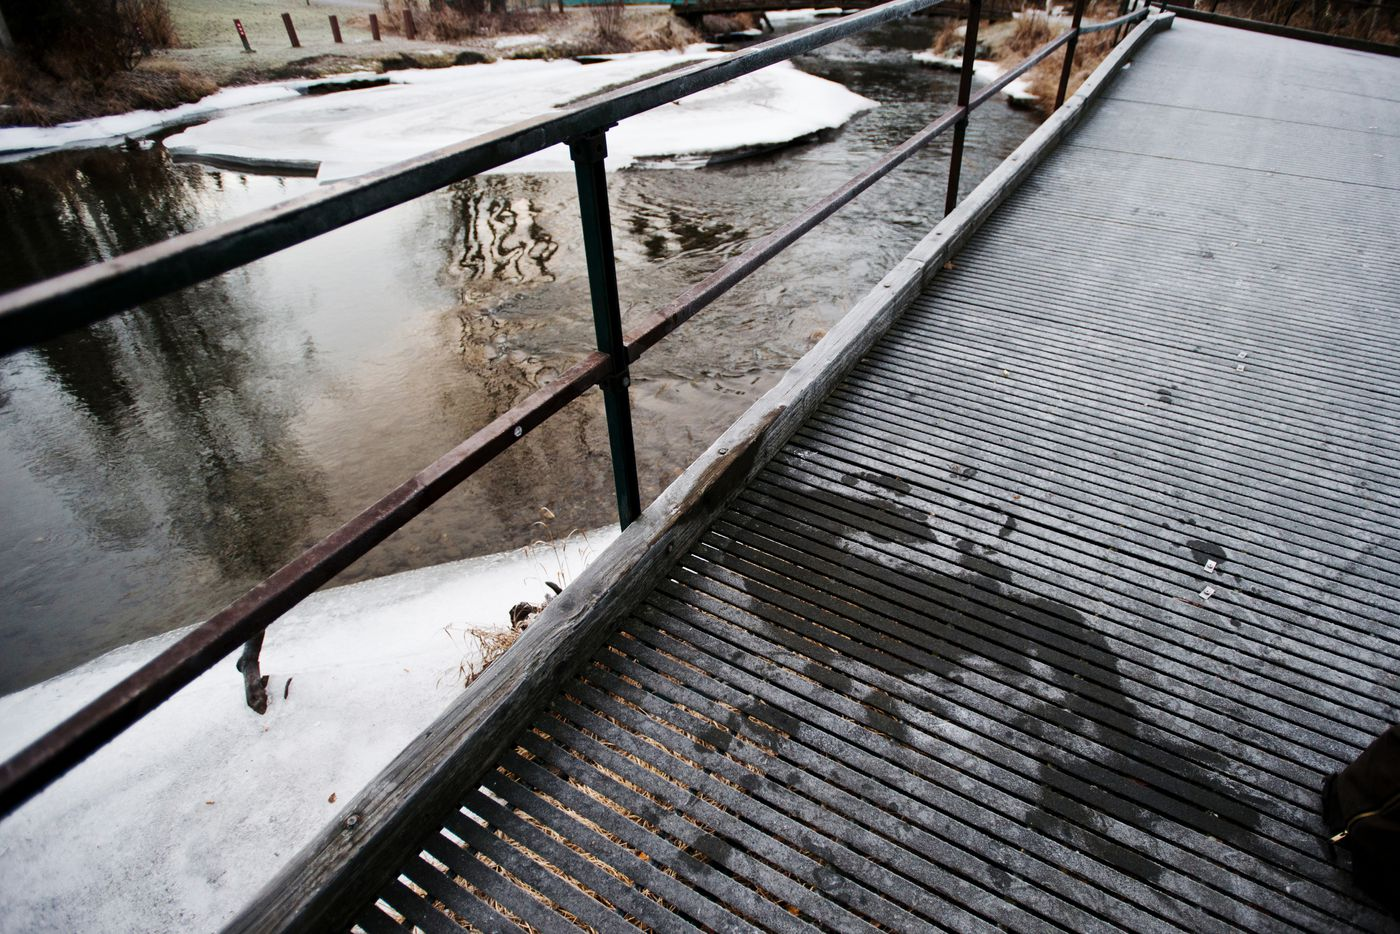 A melted area of frost on the decking of a viewing platform at Campbell Park shows where a man was sleeping. The Deck, as it is known, is a popular drinking spot for homeless people in the area. Photographed on Tuesday, December 9, 2014. Marc Lester / ADN